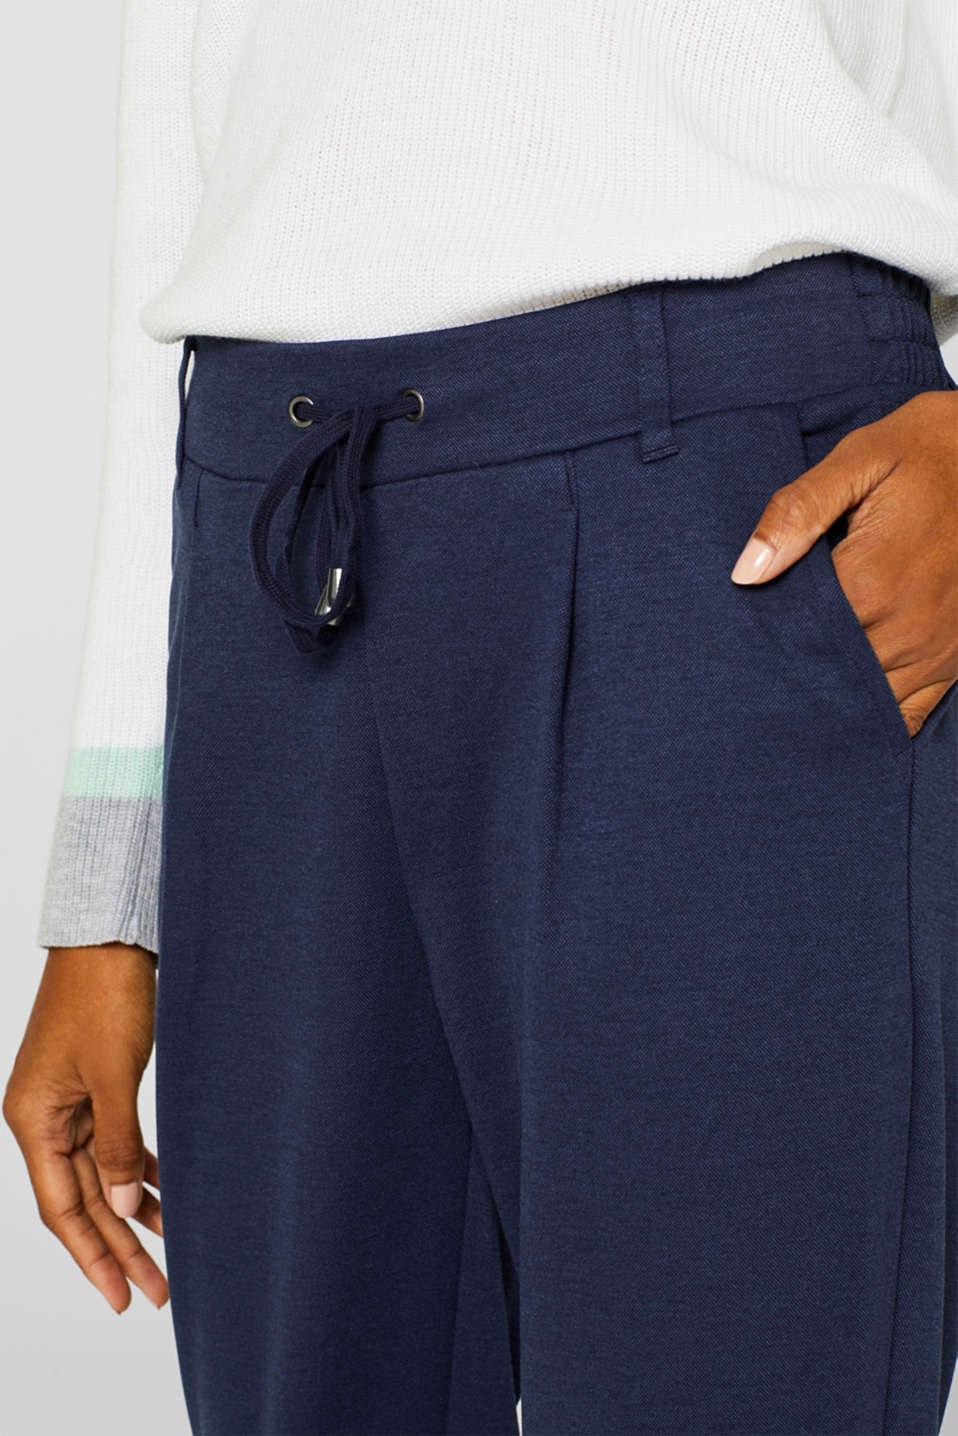 Stretch trousers in a tracksuit bottoms style, NAVY, detail image number 2